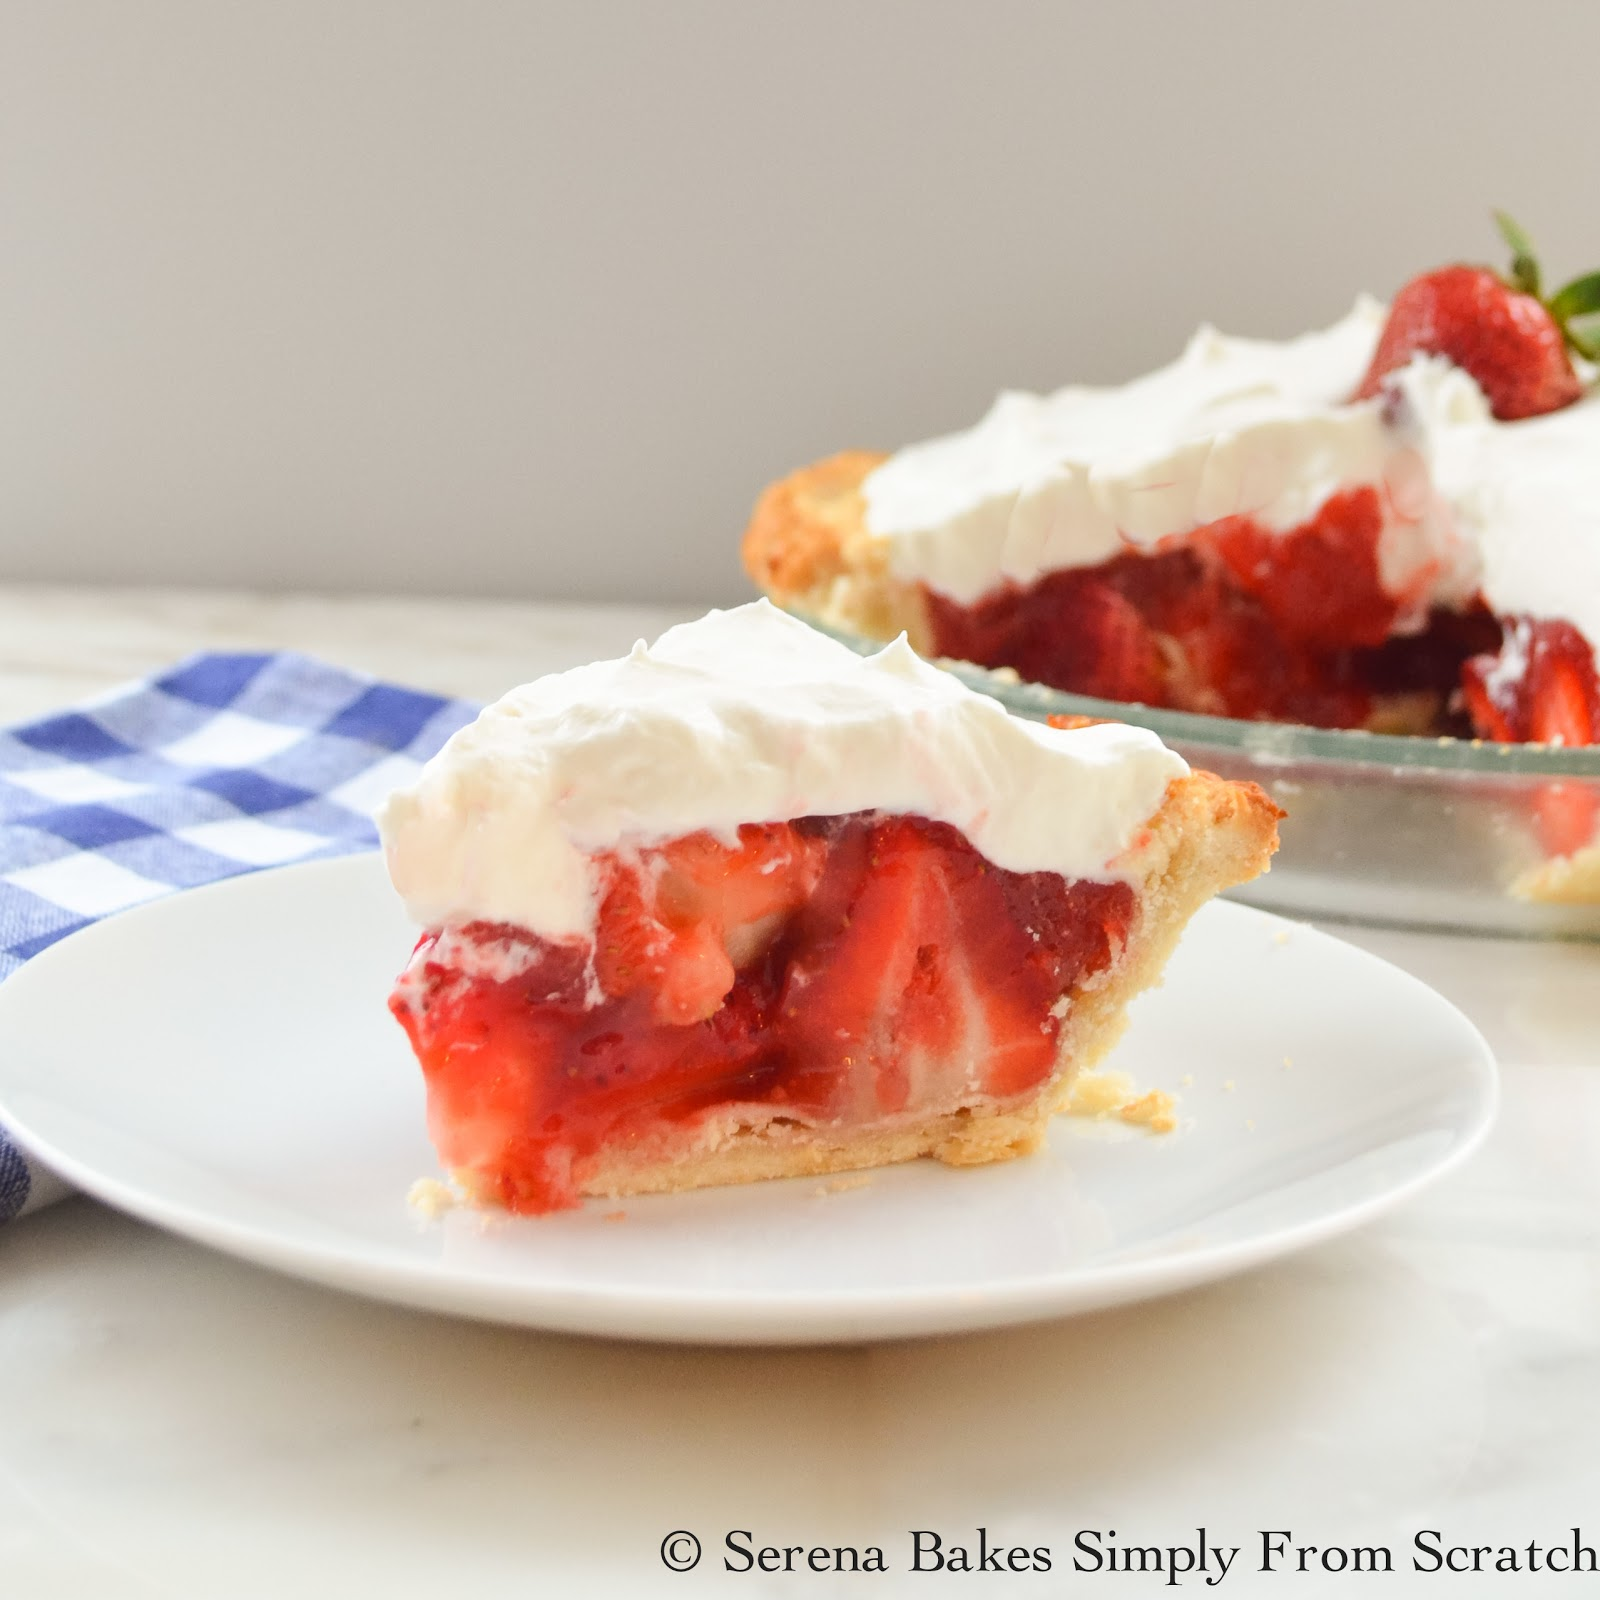 Serena Bakes Simply From Scratch